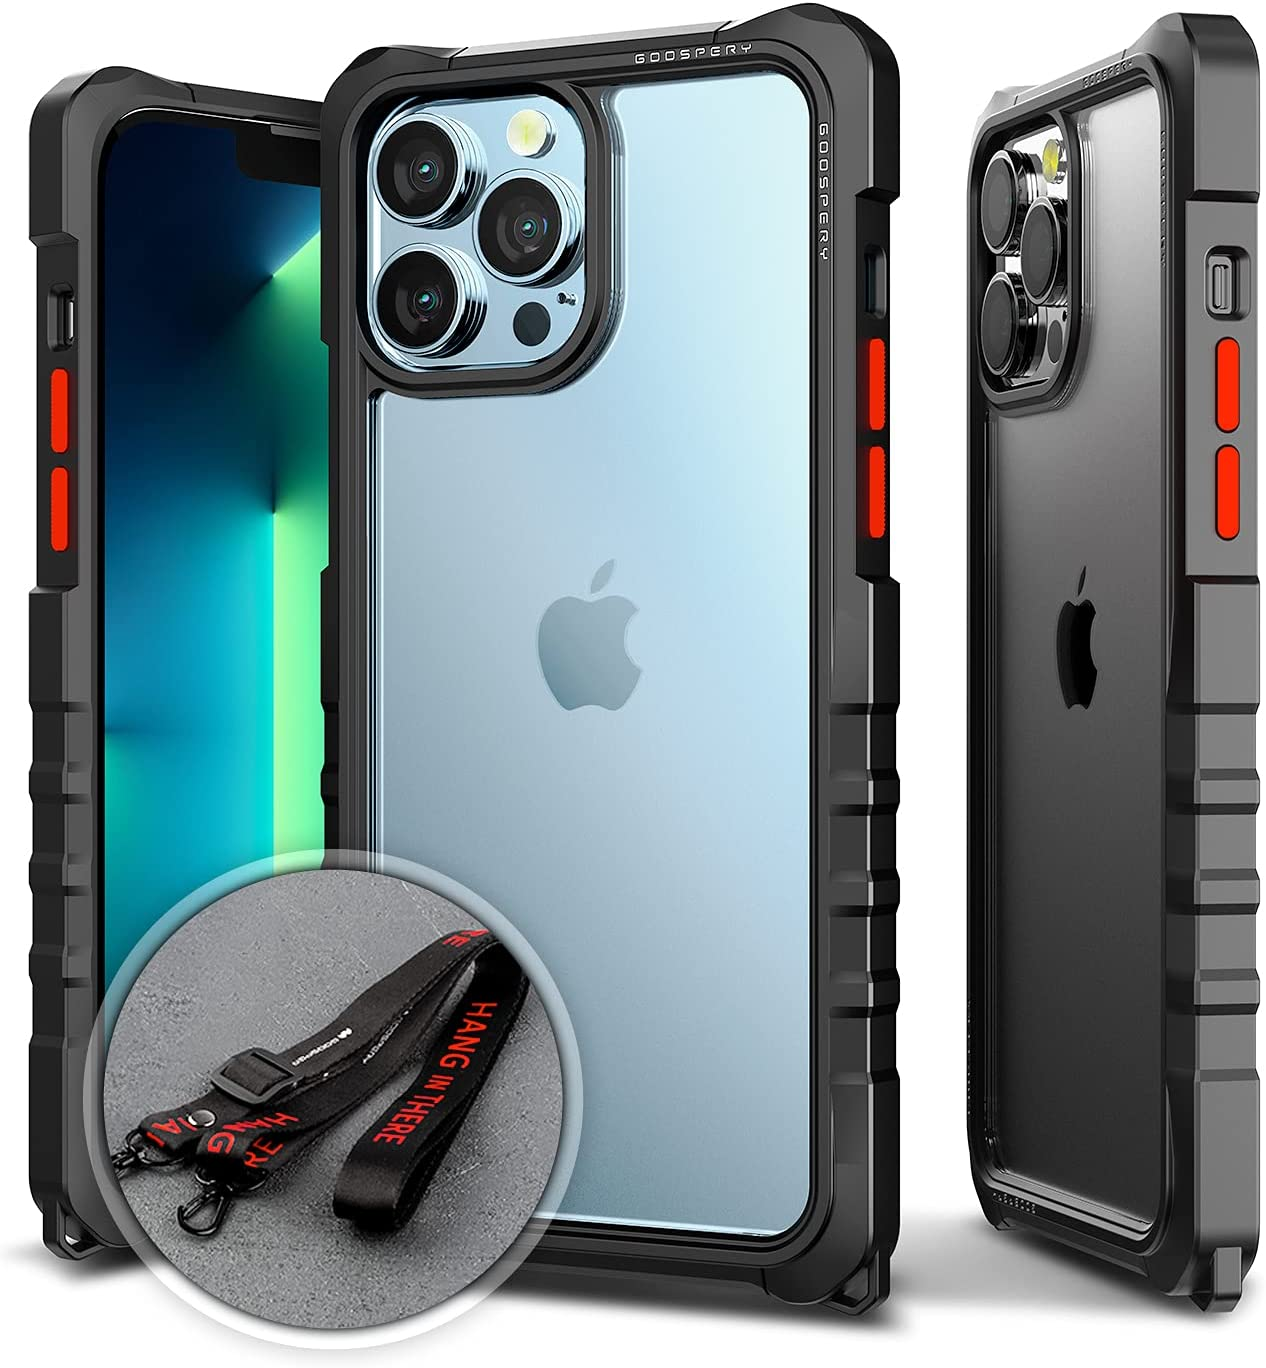 Goospery Z Bumper Compatible with iPhone 13 Pro Max Case [Strap Included] Shock Absorbing Dual Layer Structure TPU Edge Crystal Clear PC Back Cover with Shoulder Strap (Black) IP13PM-ZBM-BLK-STR